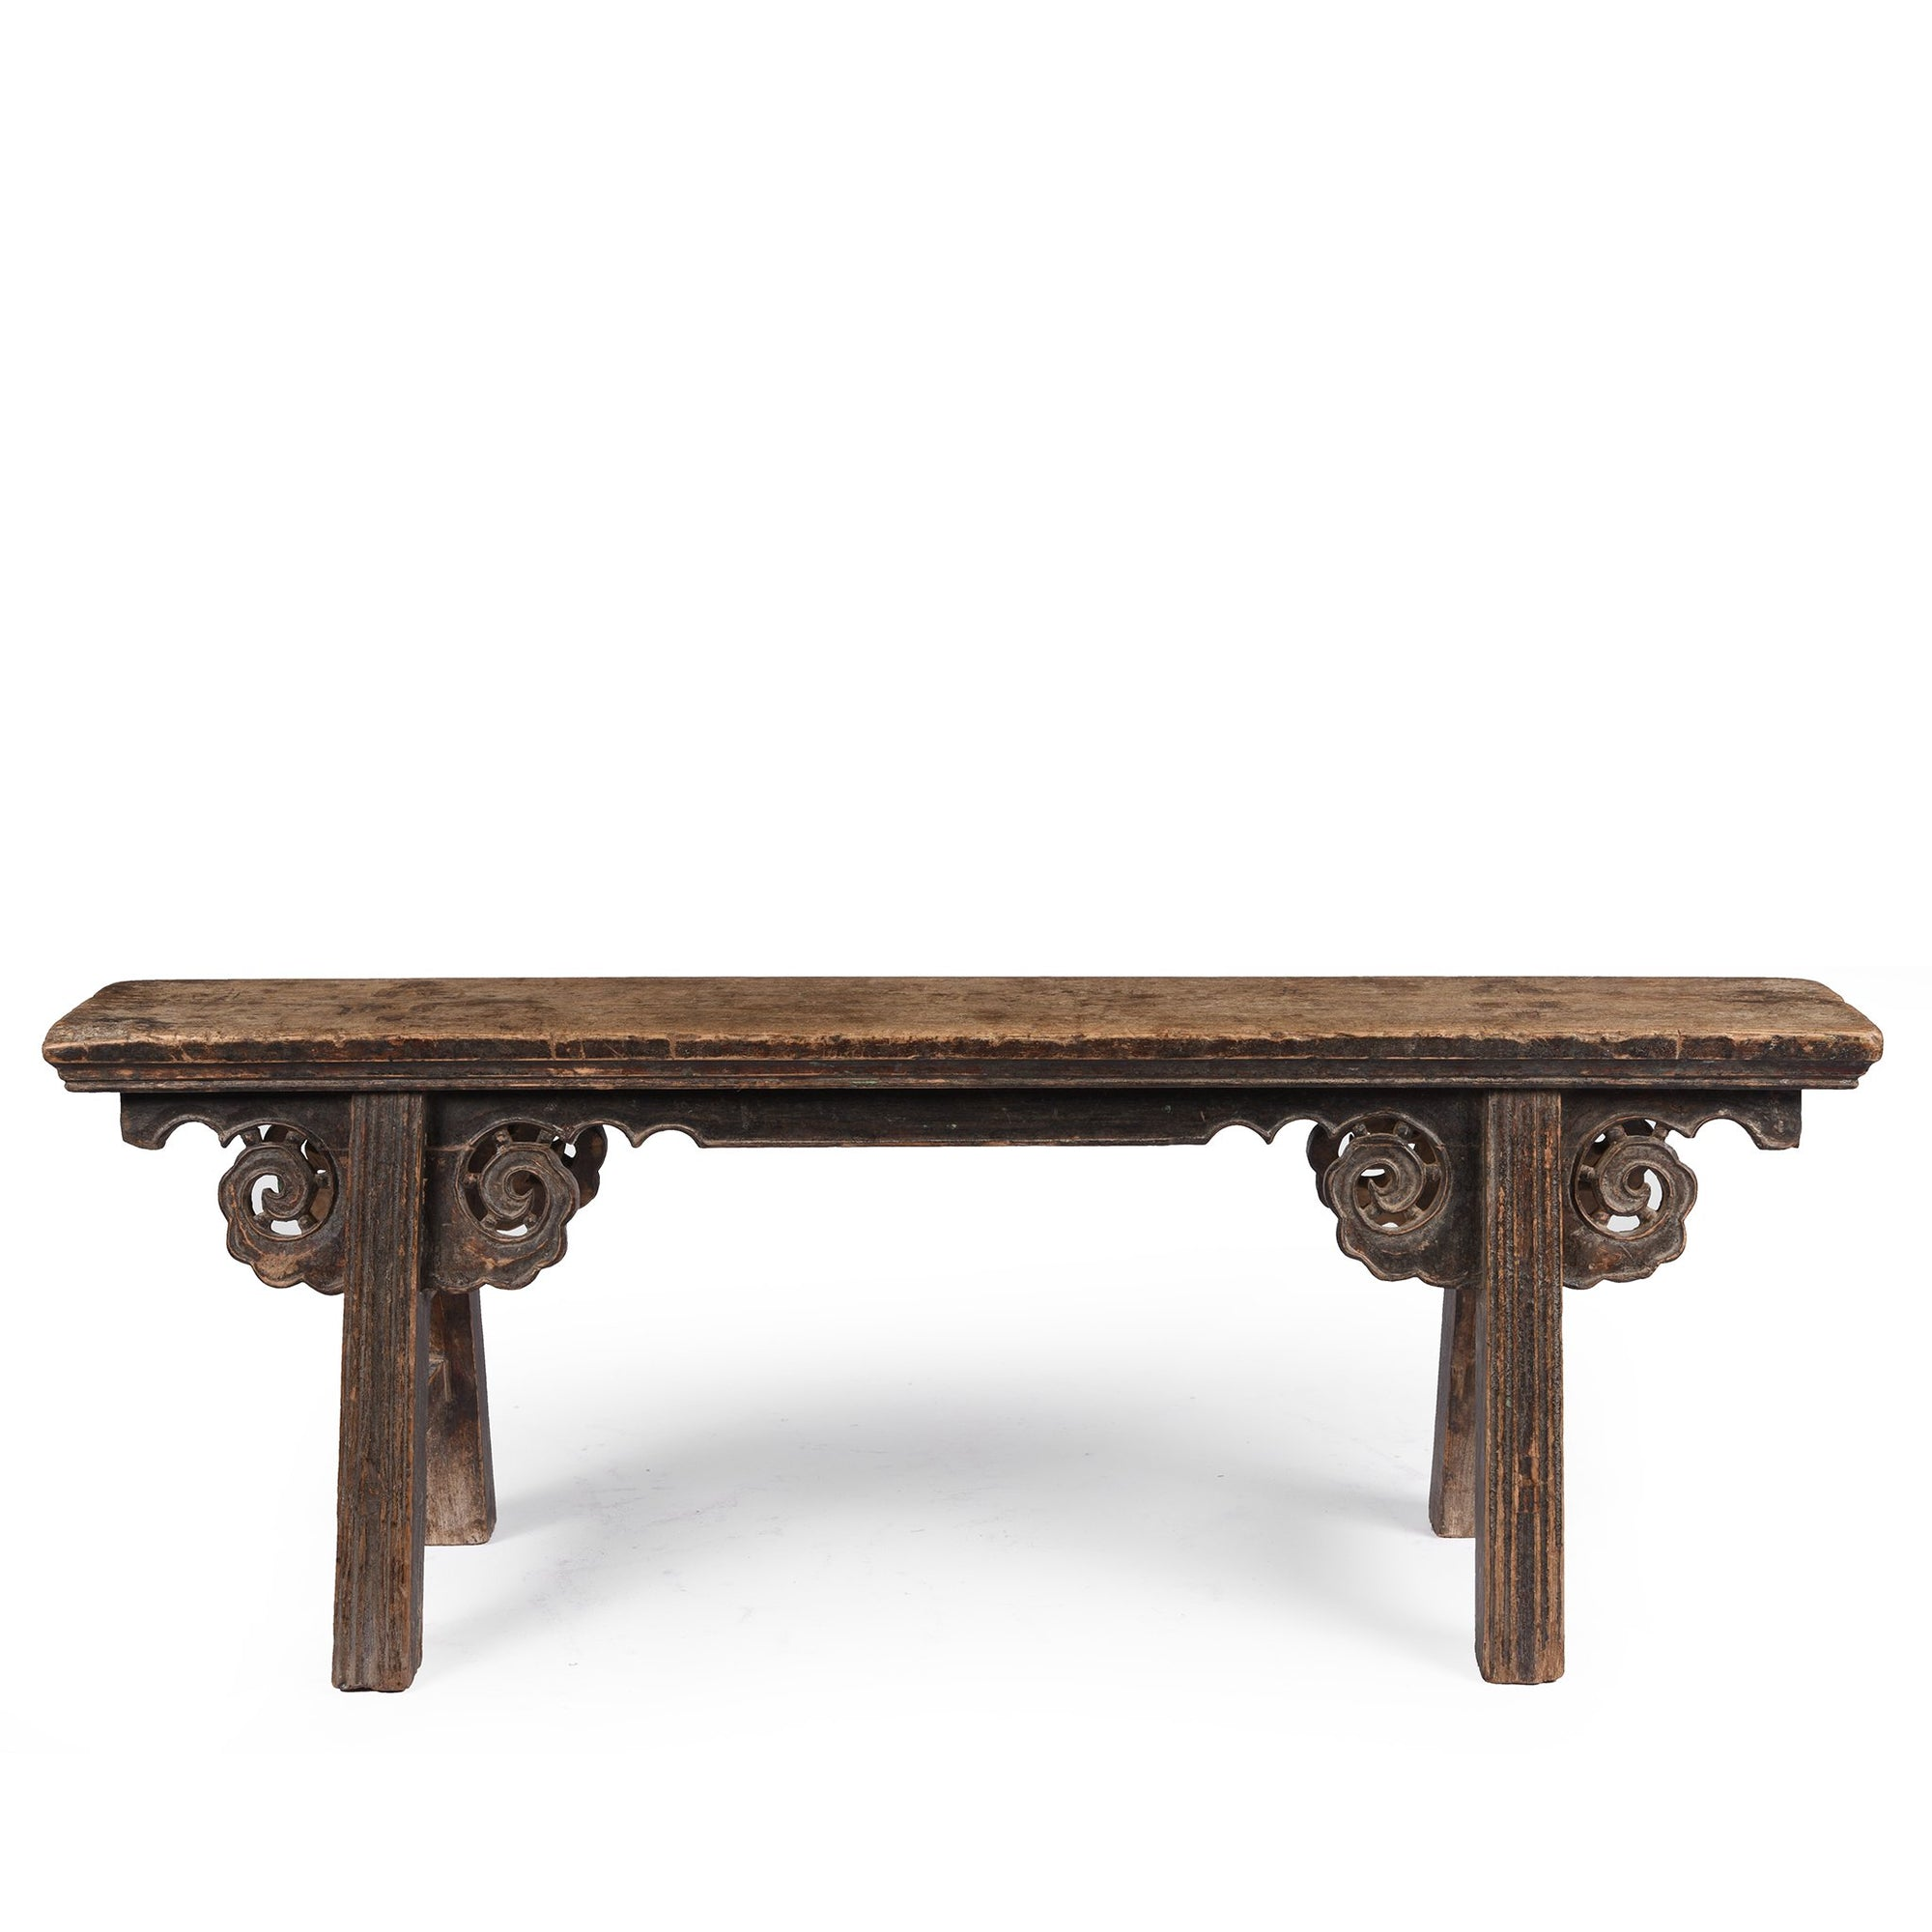 Chinese Spring Bench From Shanxi - 19thC